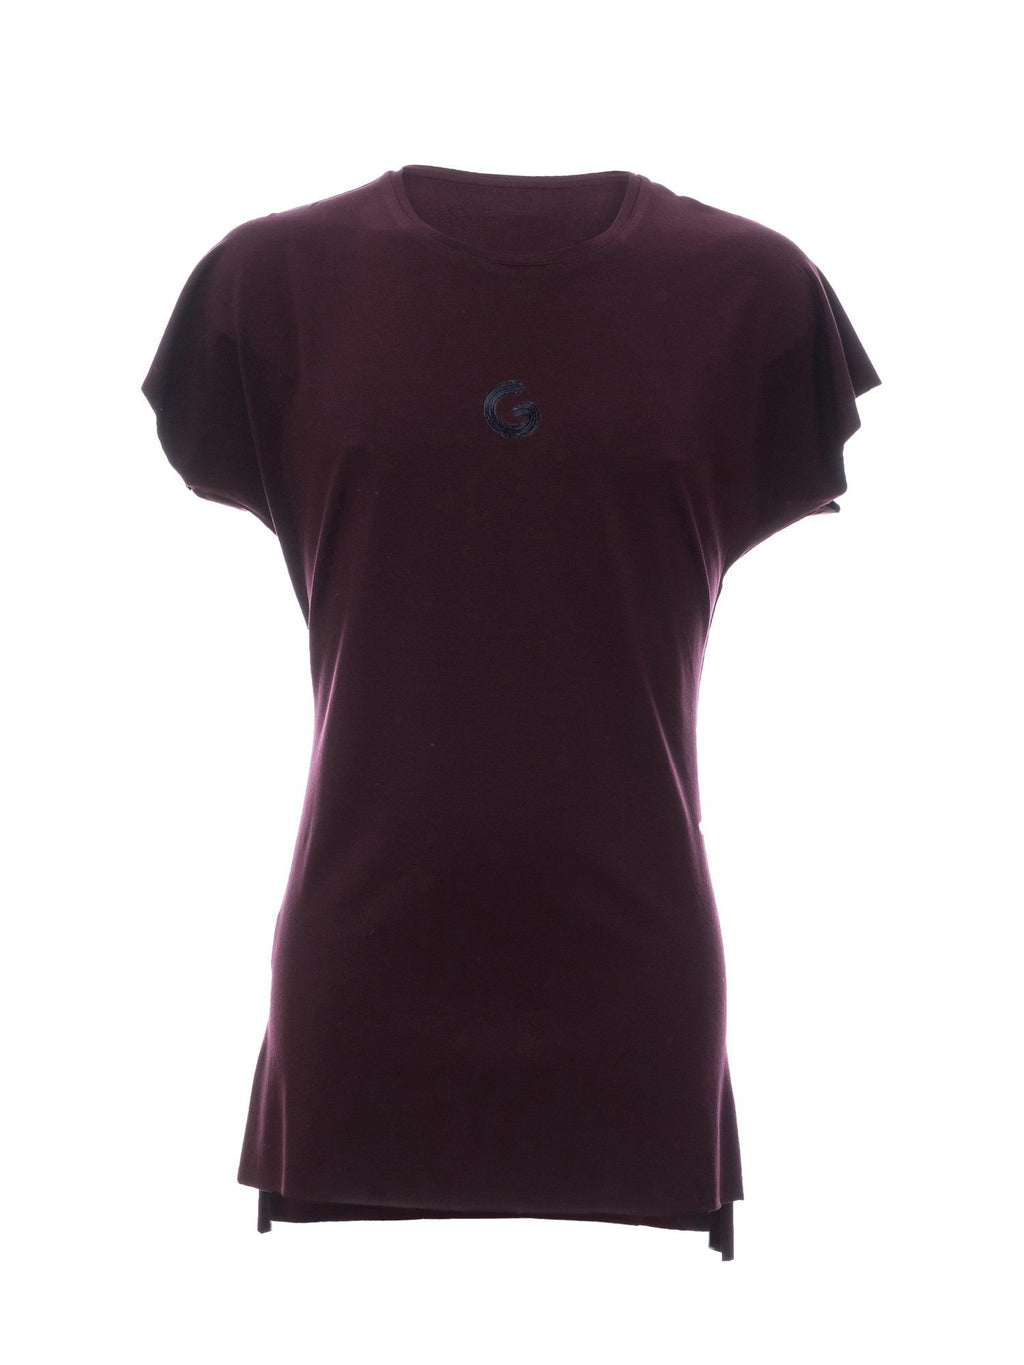 TheG Viscose Essential Short Sleeve Tee // merlot